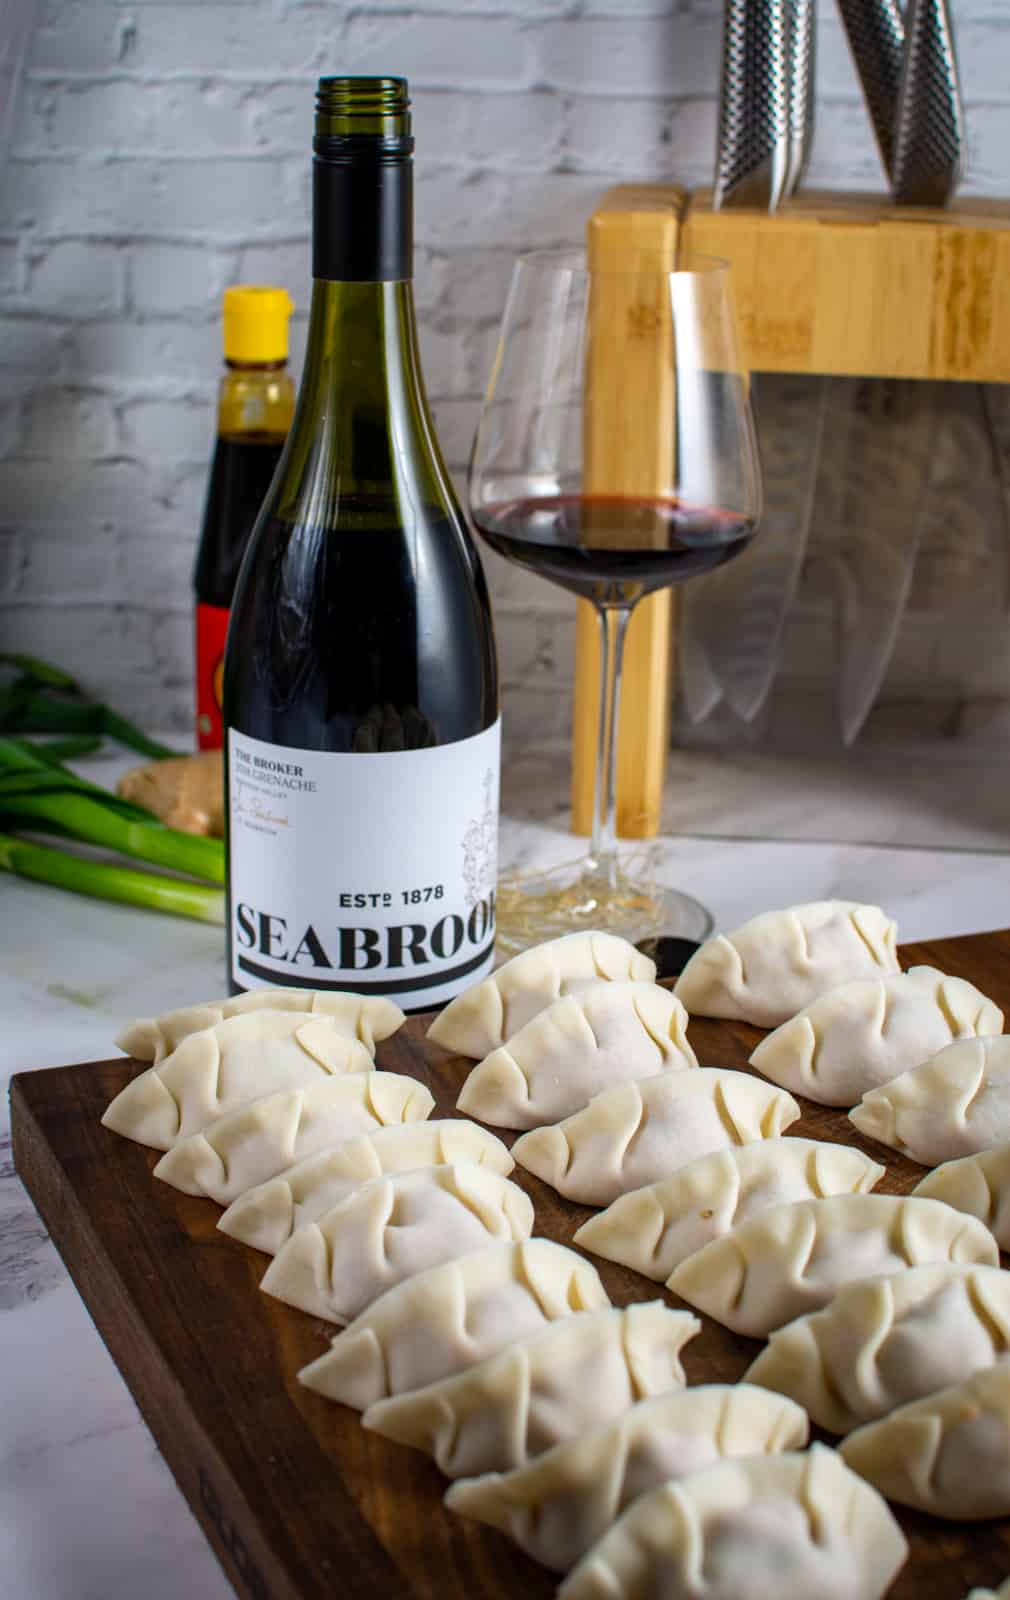 a chopping board with multiple pork cabbage dumplings and bottle of wine in background